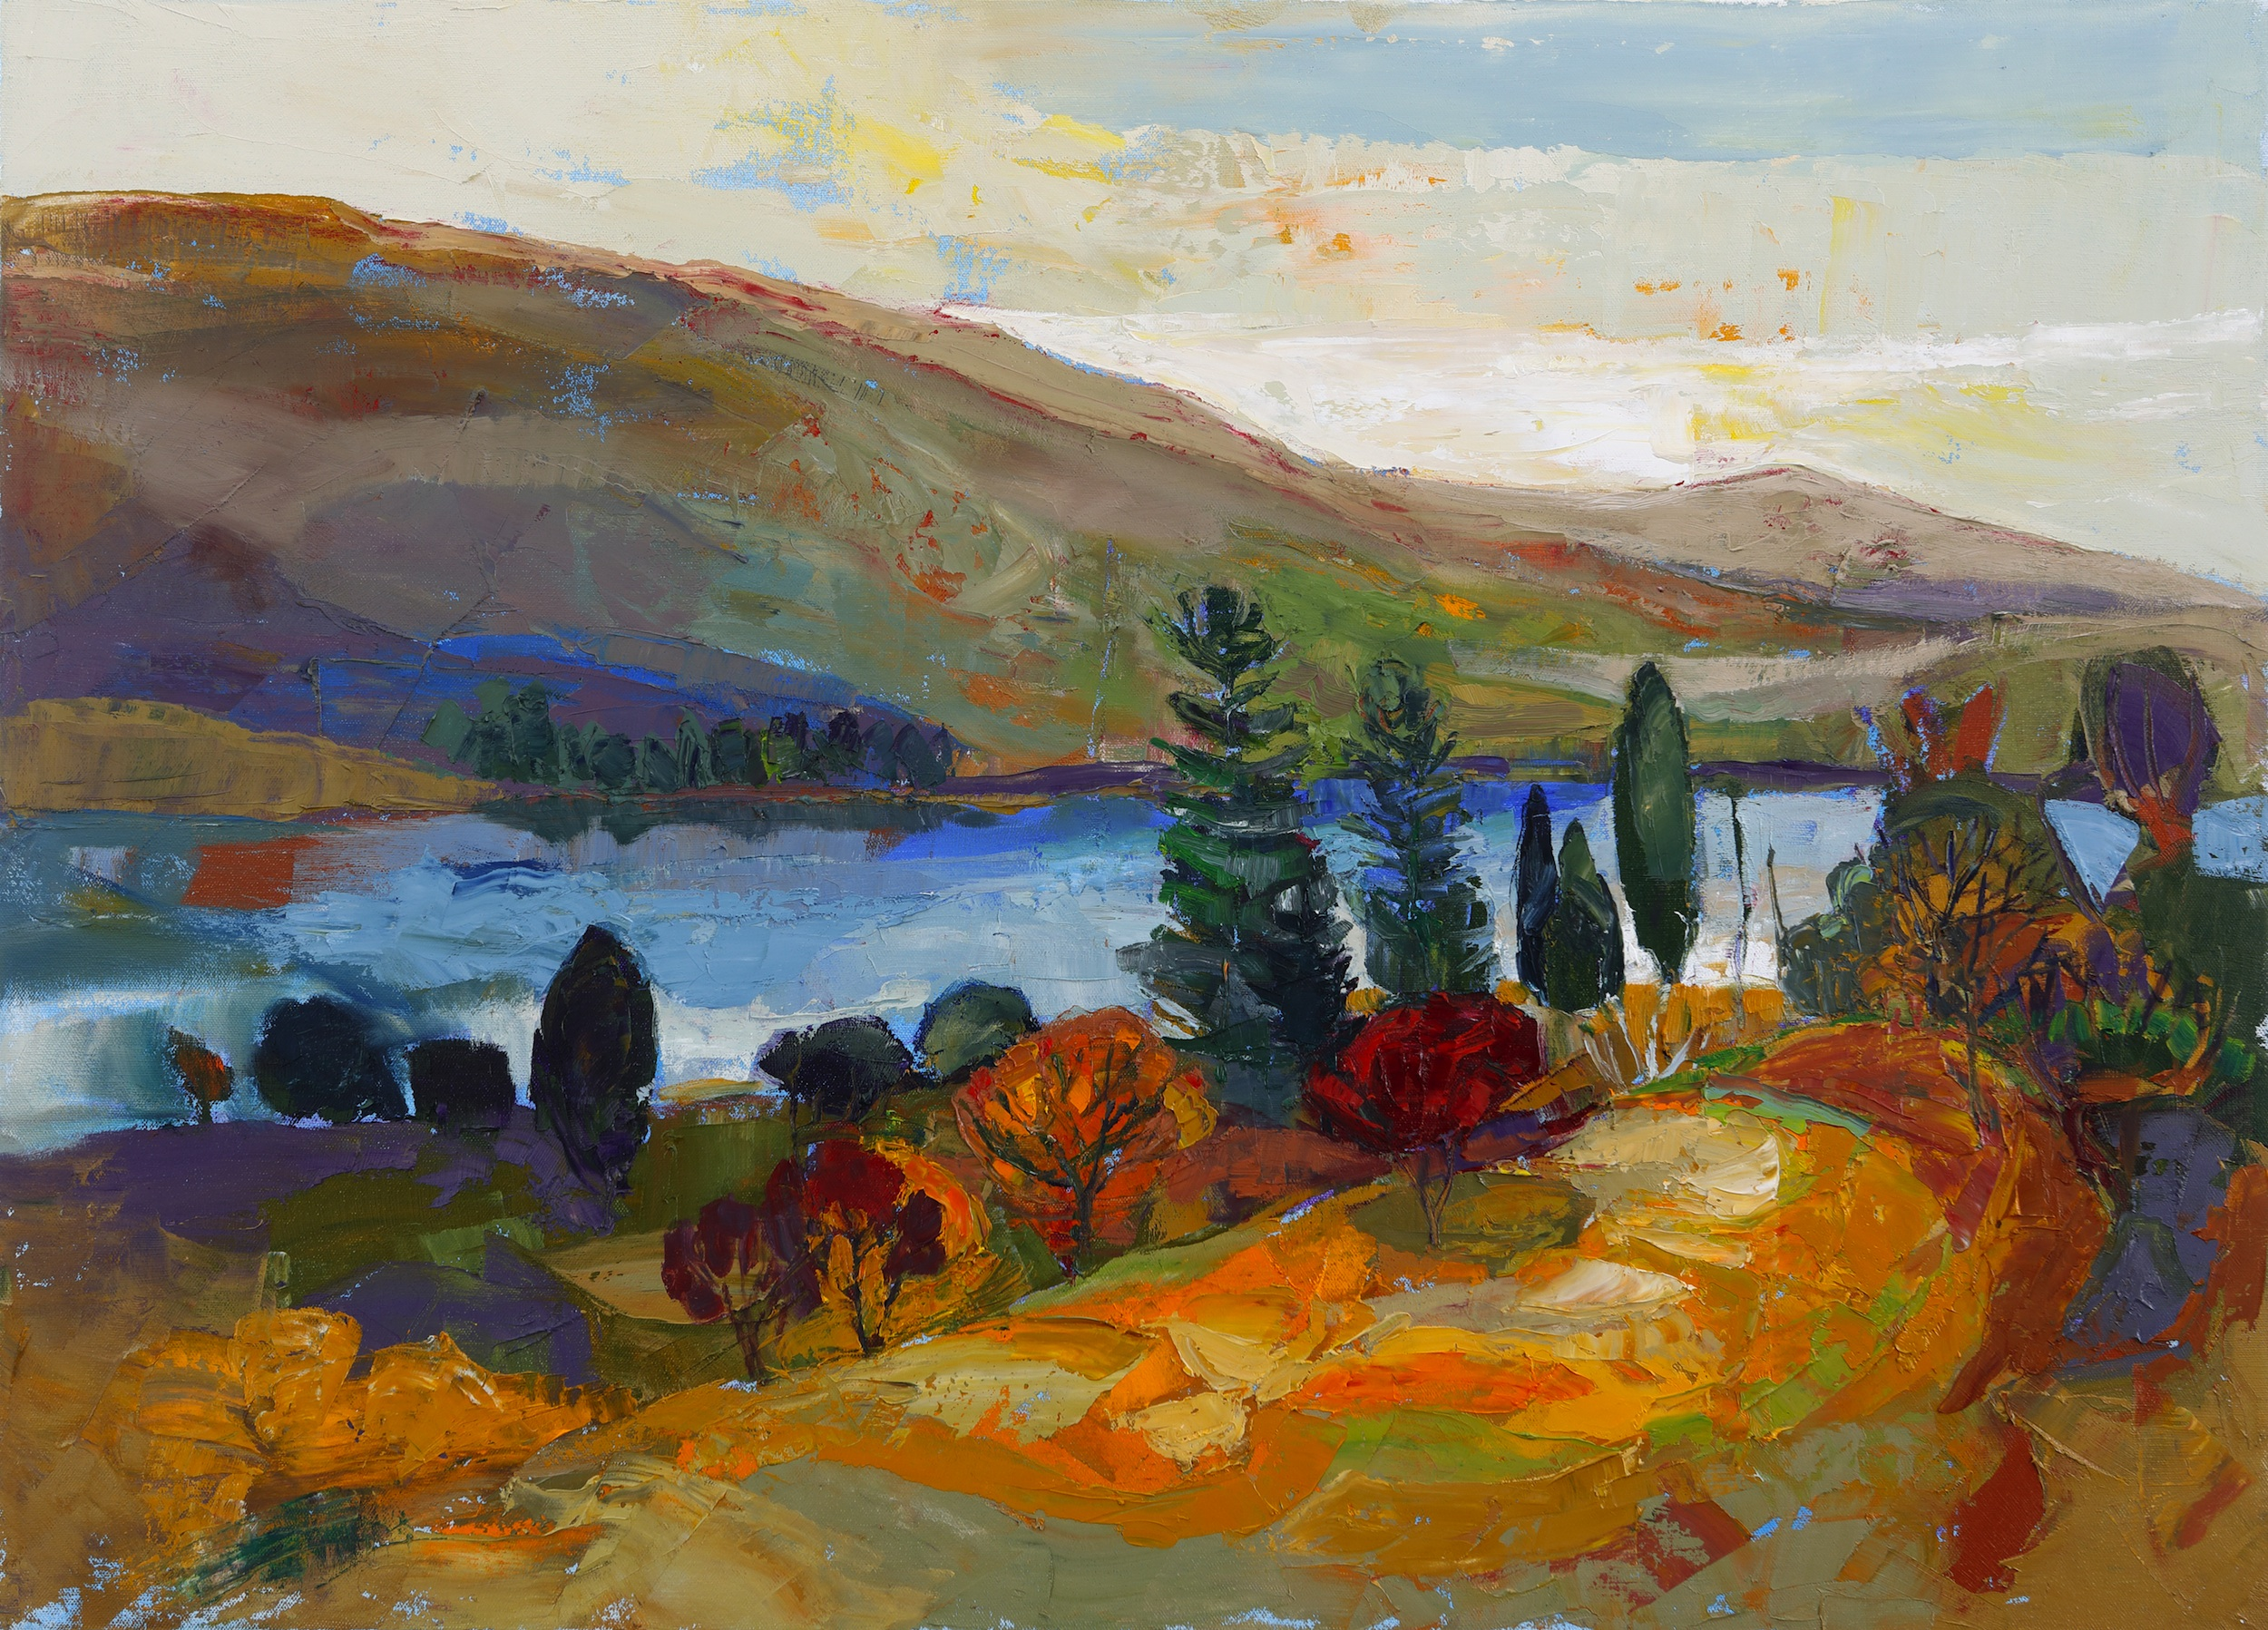 Title: Shore and Loch Size: 22 x 32 inches Medium: Oil on Canvas Price: £4500